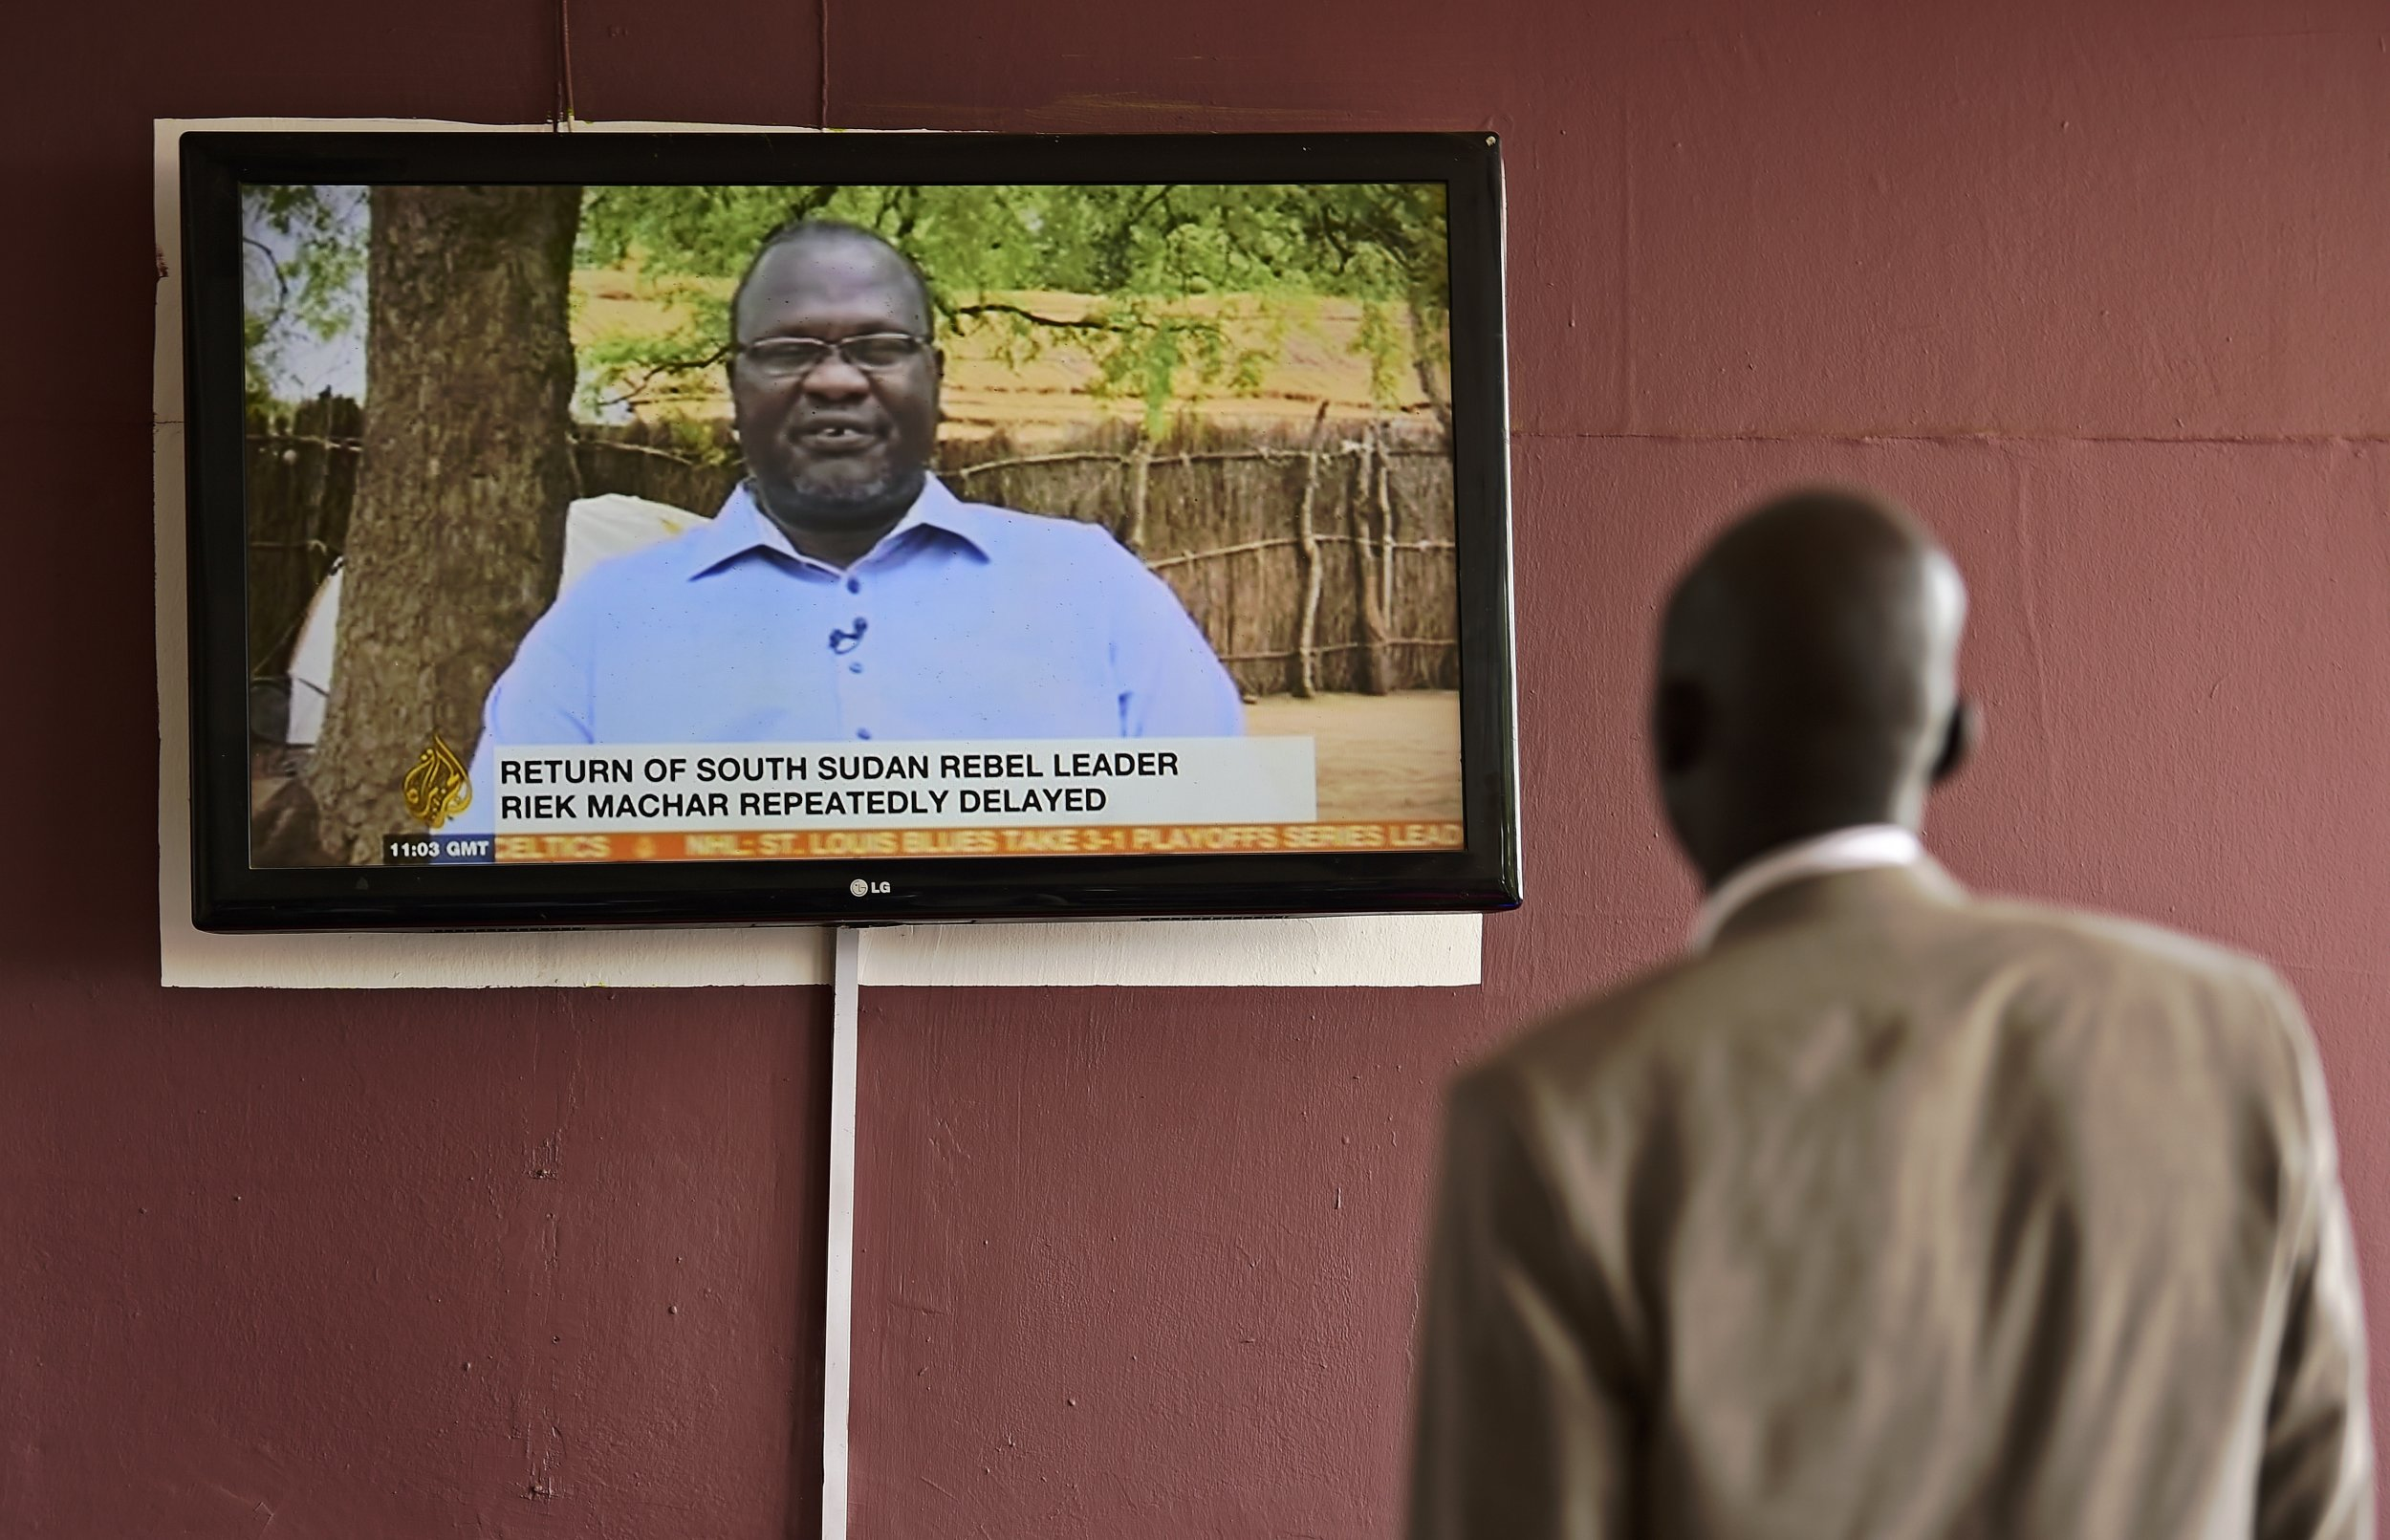 Riek Machar's delayed return to South Sudan on the news.